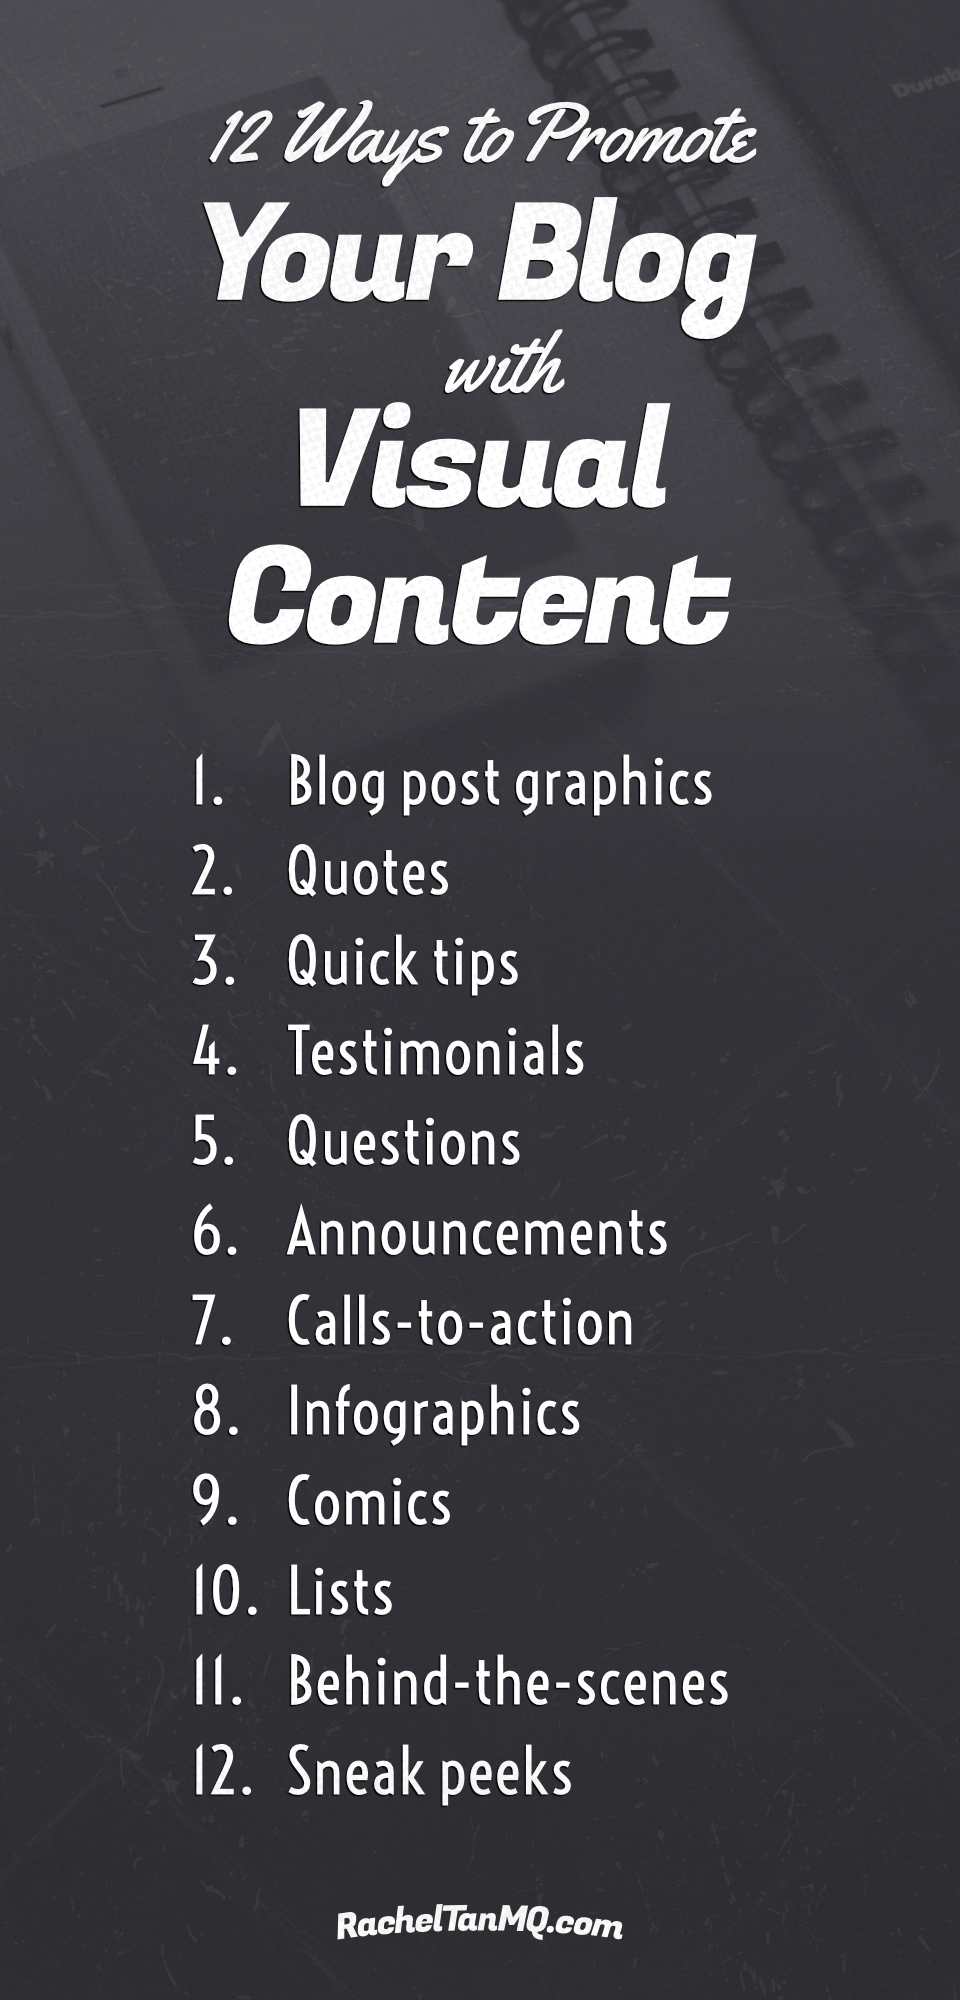 Increase your blog traffic with these 12 visual marketing ideas! • visual content marketing design | how to promote your blog on pinterest | how to promote your blog on instagram | pinterest tips for bloggers | instagram tips for bloggers | pinterest marketing | instagram marketing | blog graphics | social media graphics #visualmarketing #socialmediagraphics #bloggraphics #bloggingtips #pinteresttips #instagramtips #pinterestmarketing #instagrammarketing #socialmediamarketing #infographic